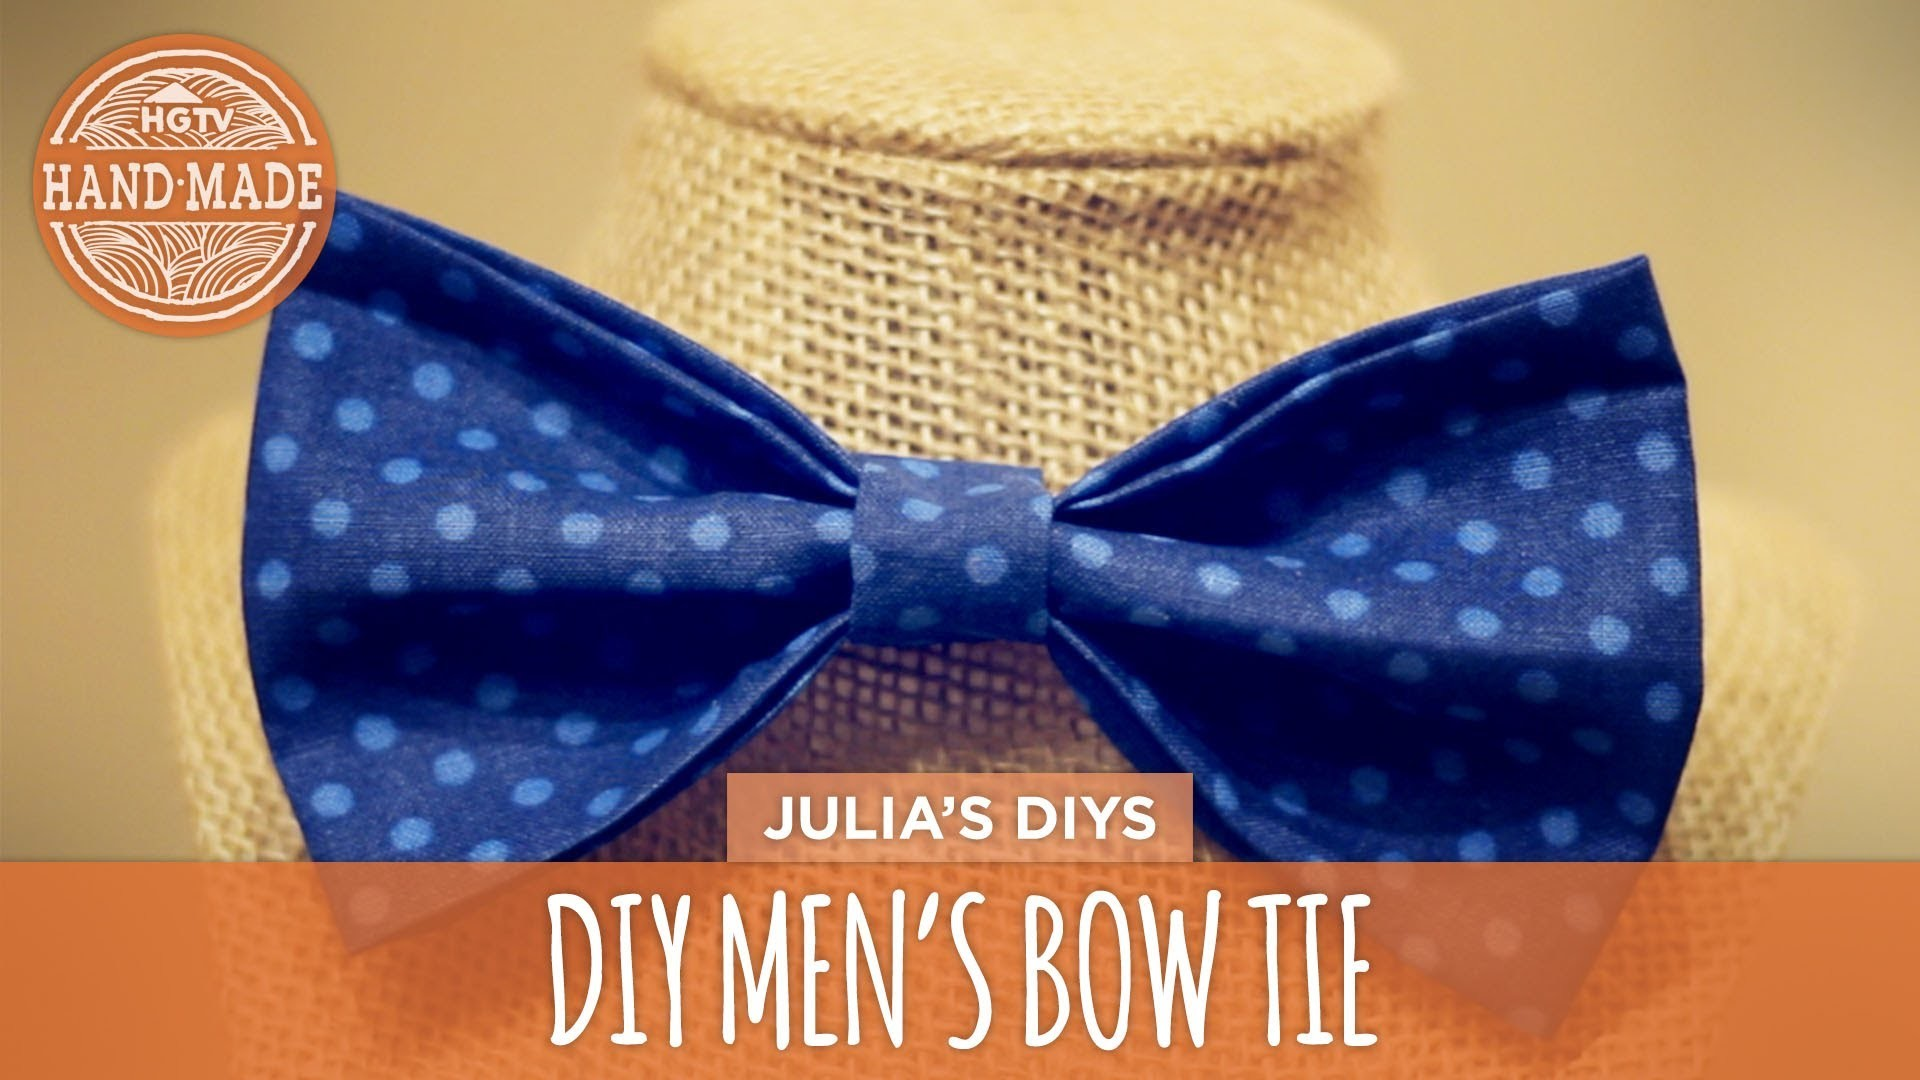 DIY Men's Bow Tie - HGTV Handmade